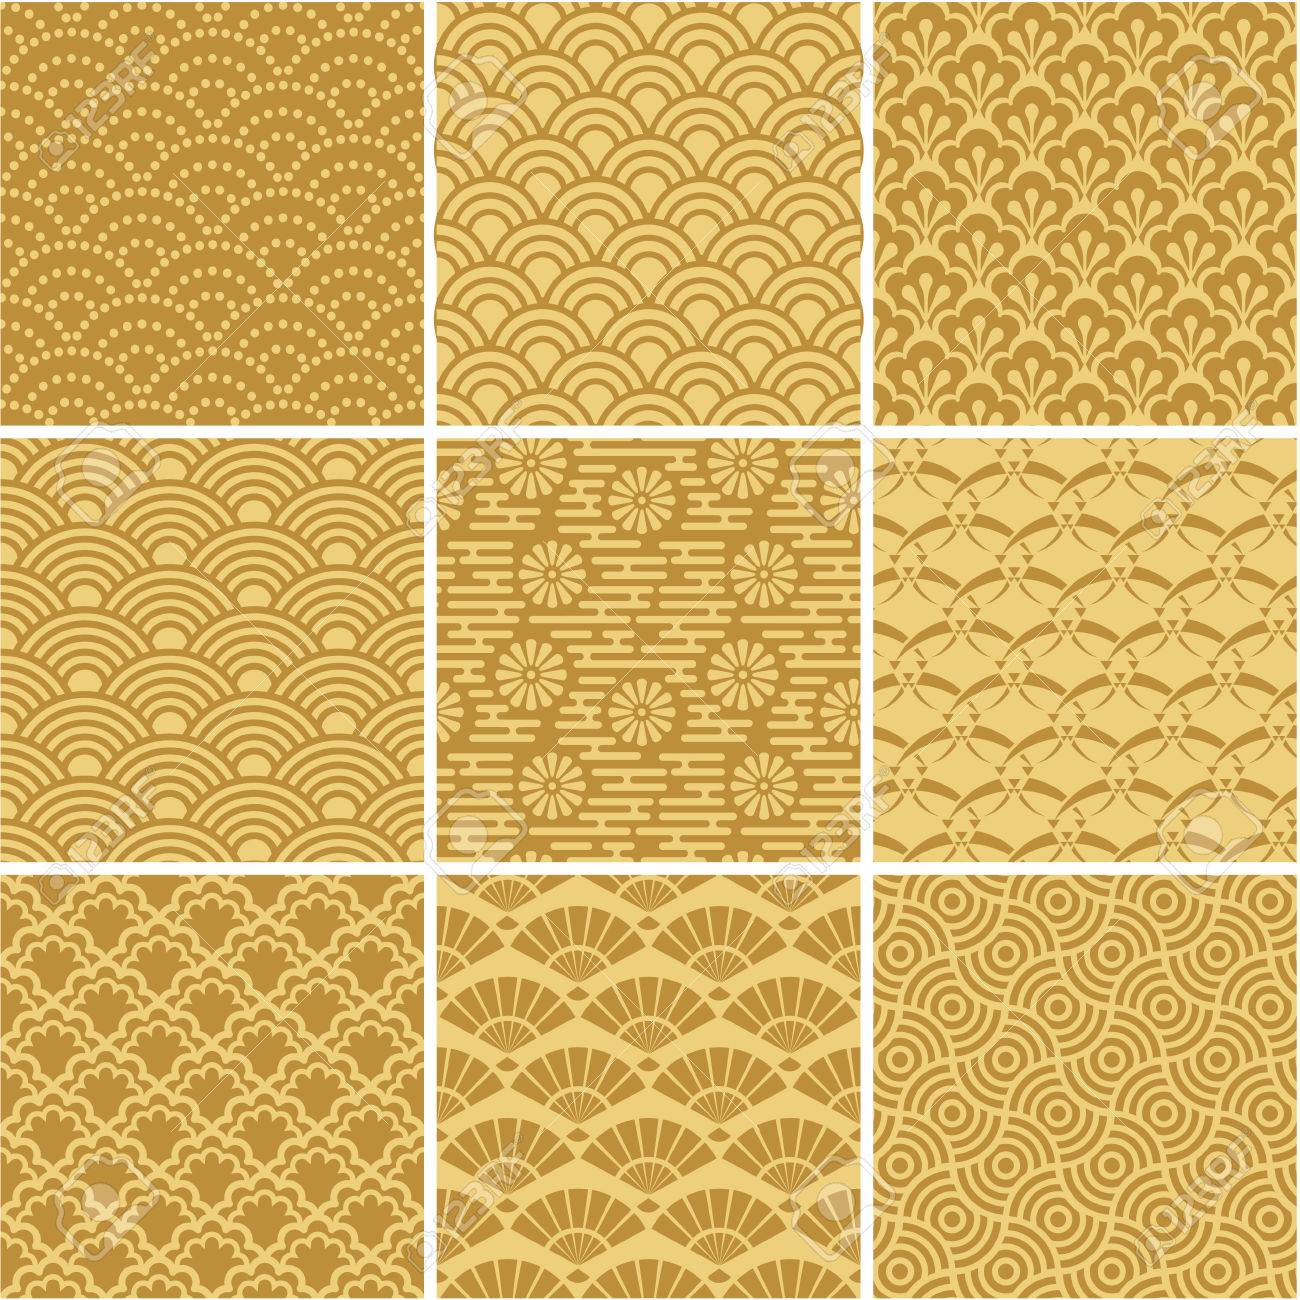 Gold seamless wave patterns for web background, surface - 36623789